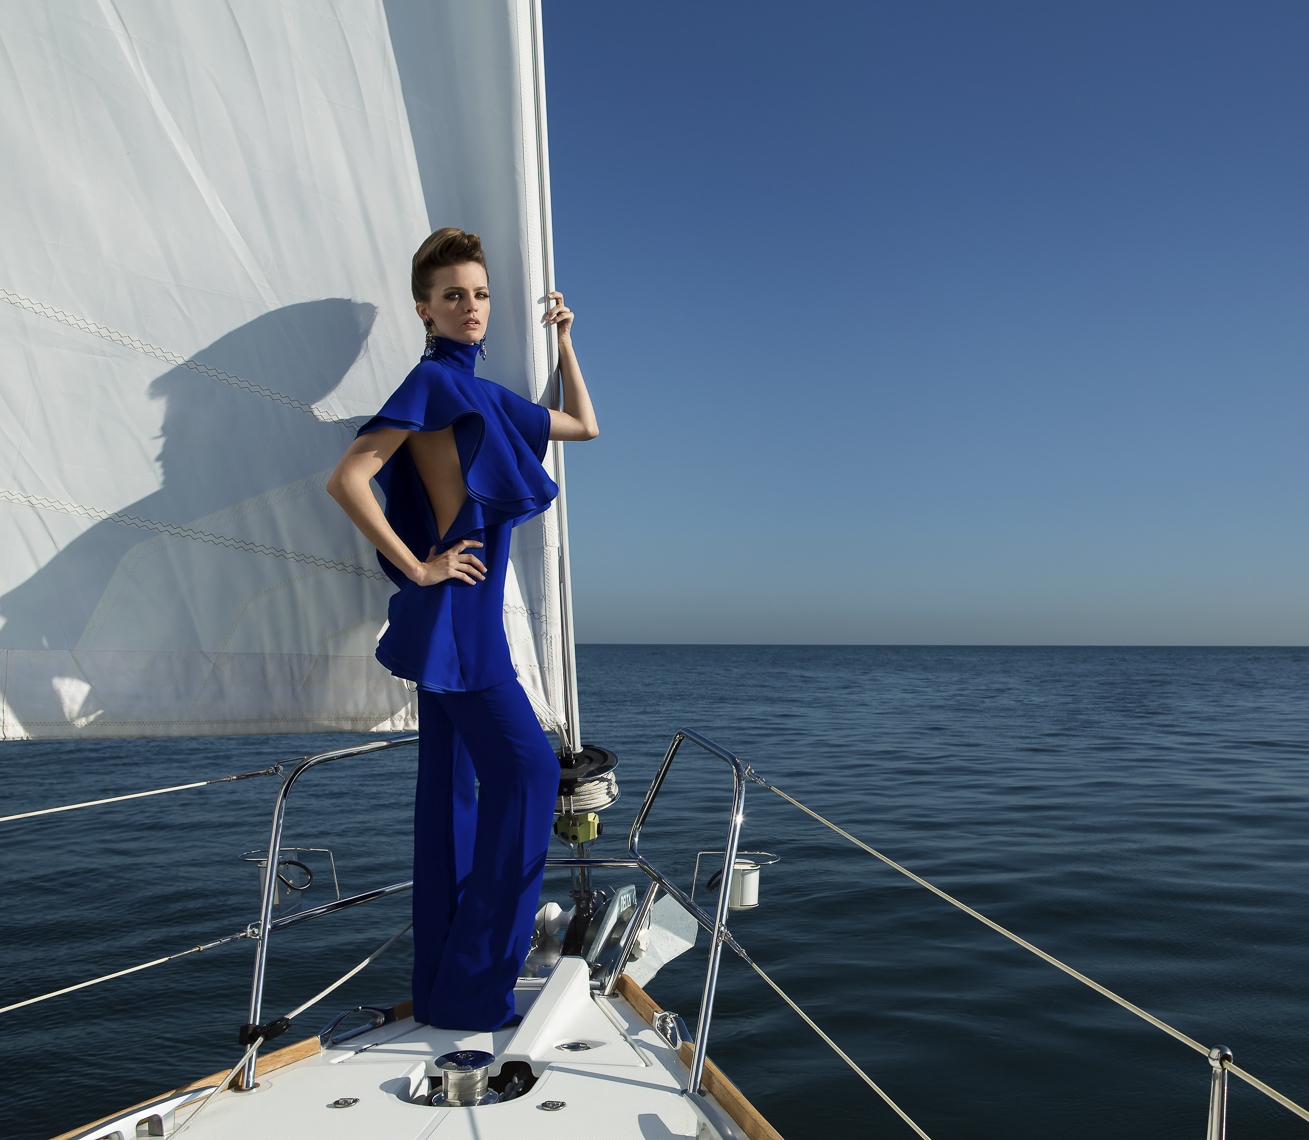 On Fashion Boat Photography